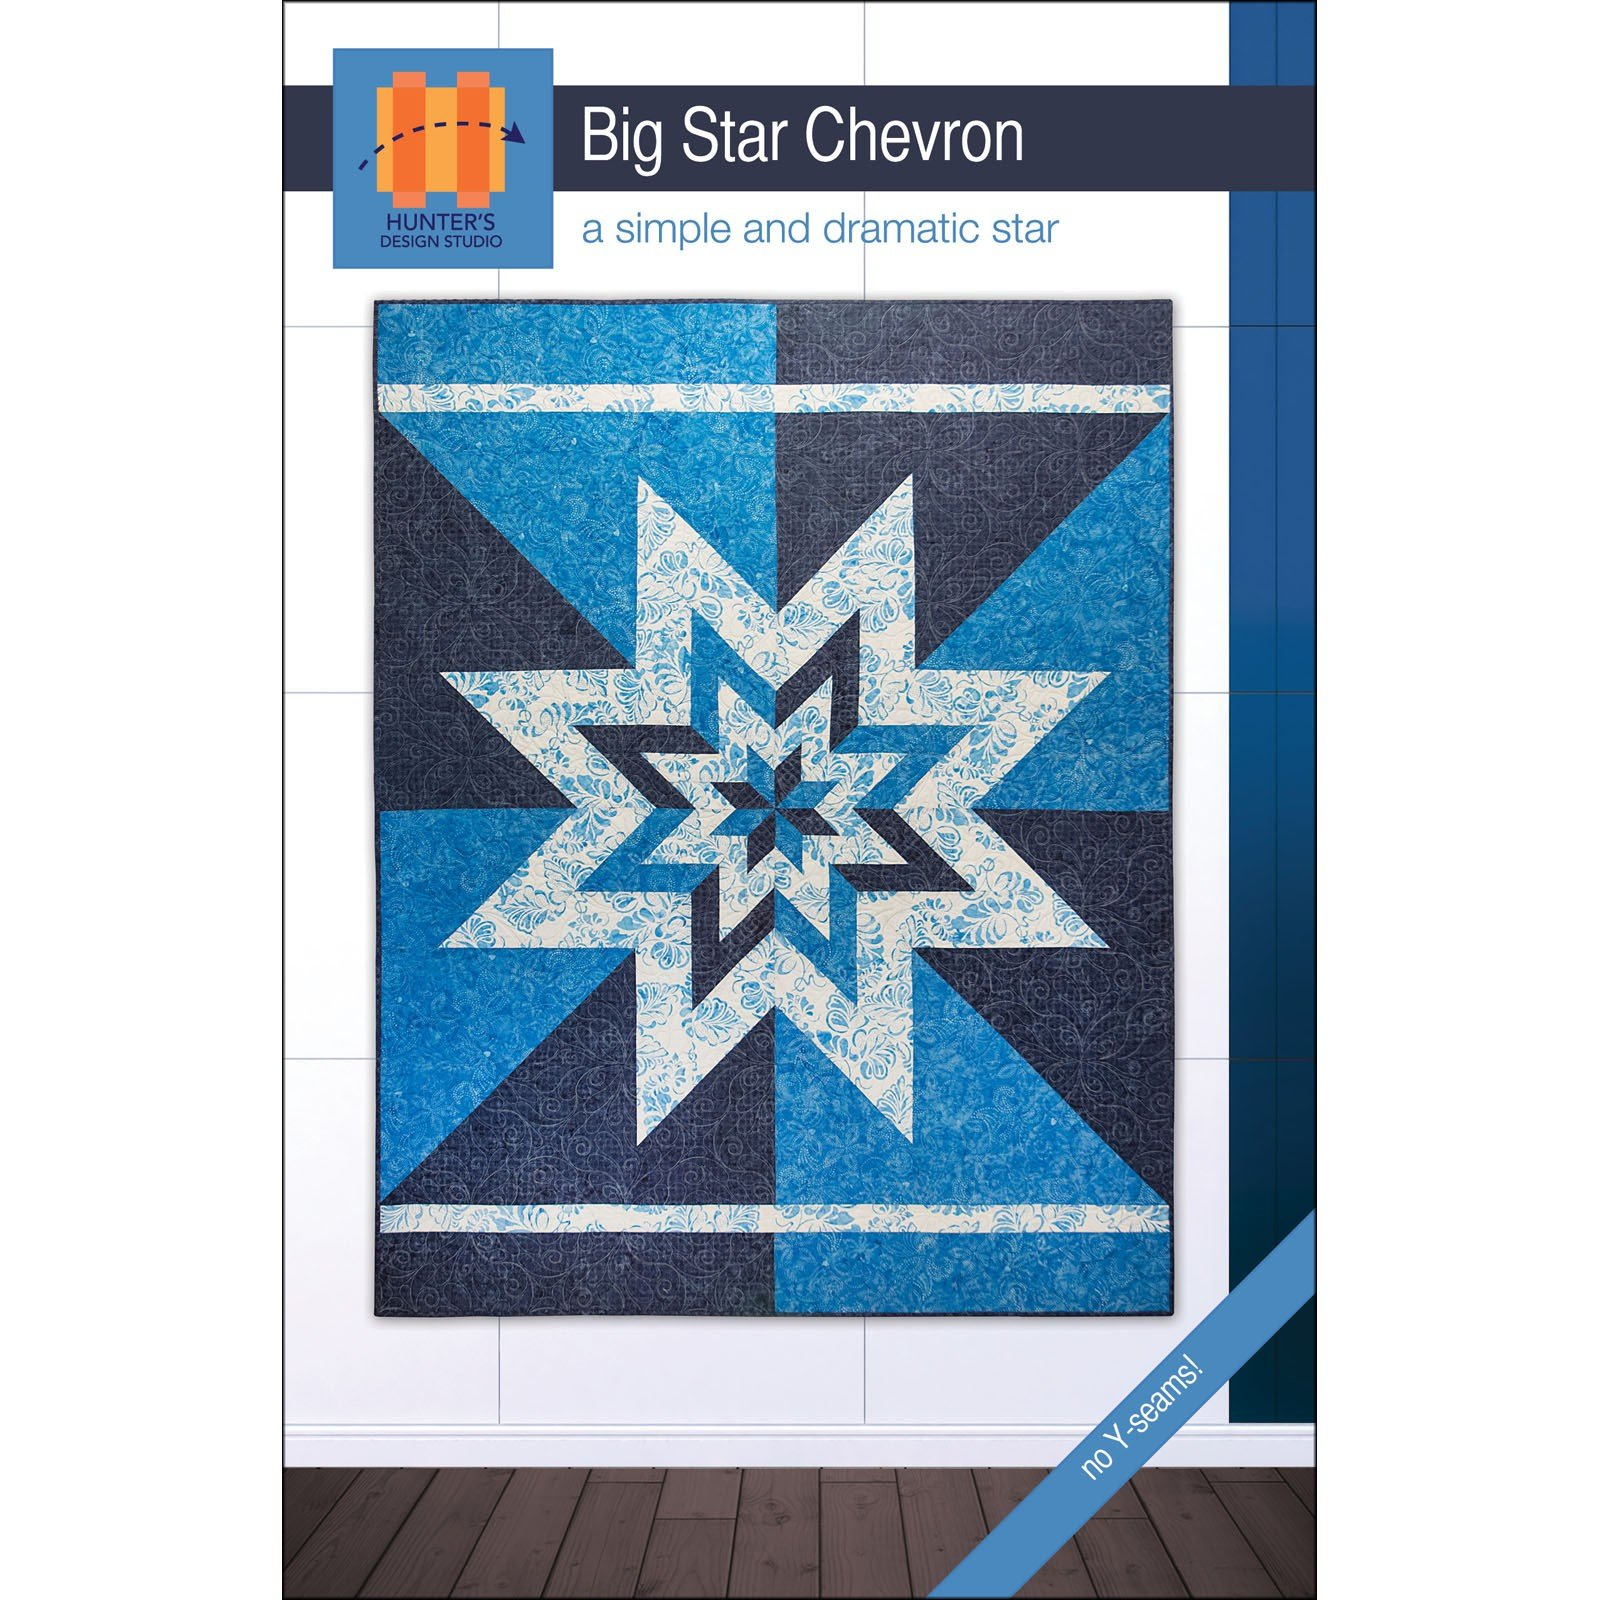 Big Star Chevron